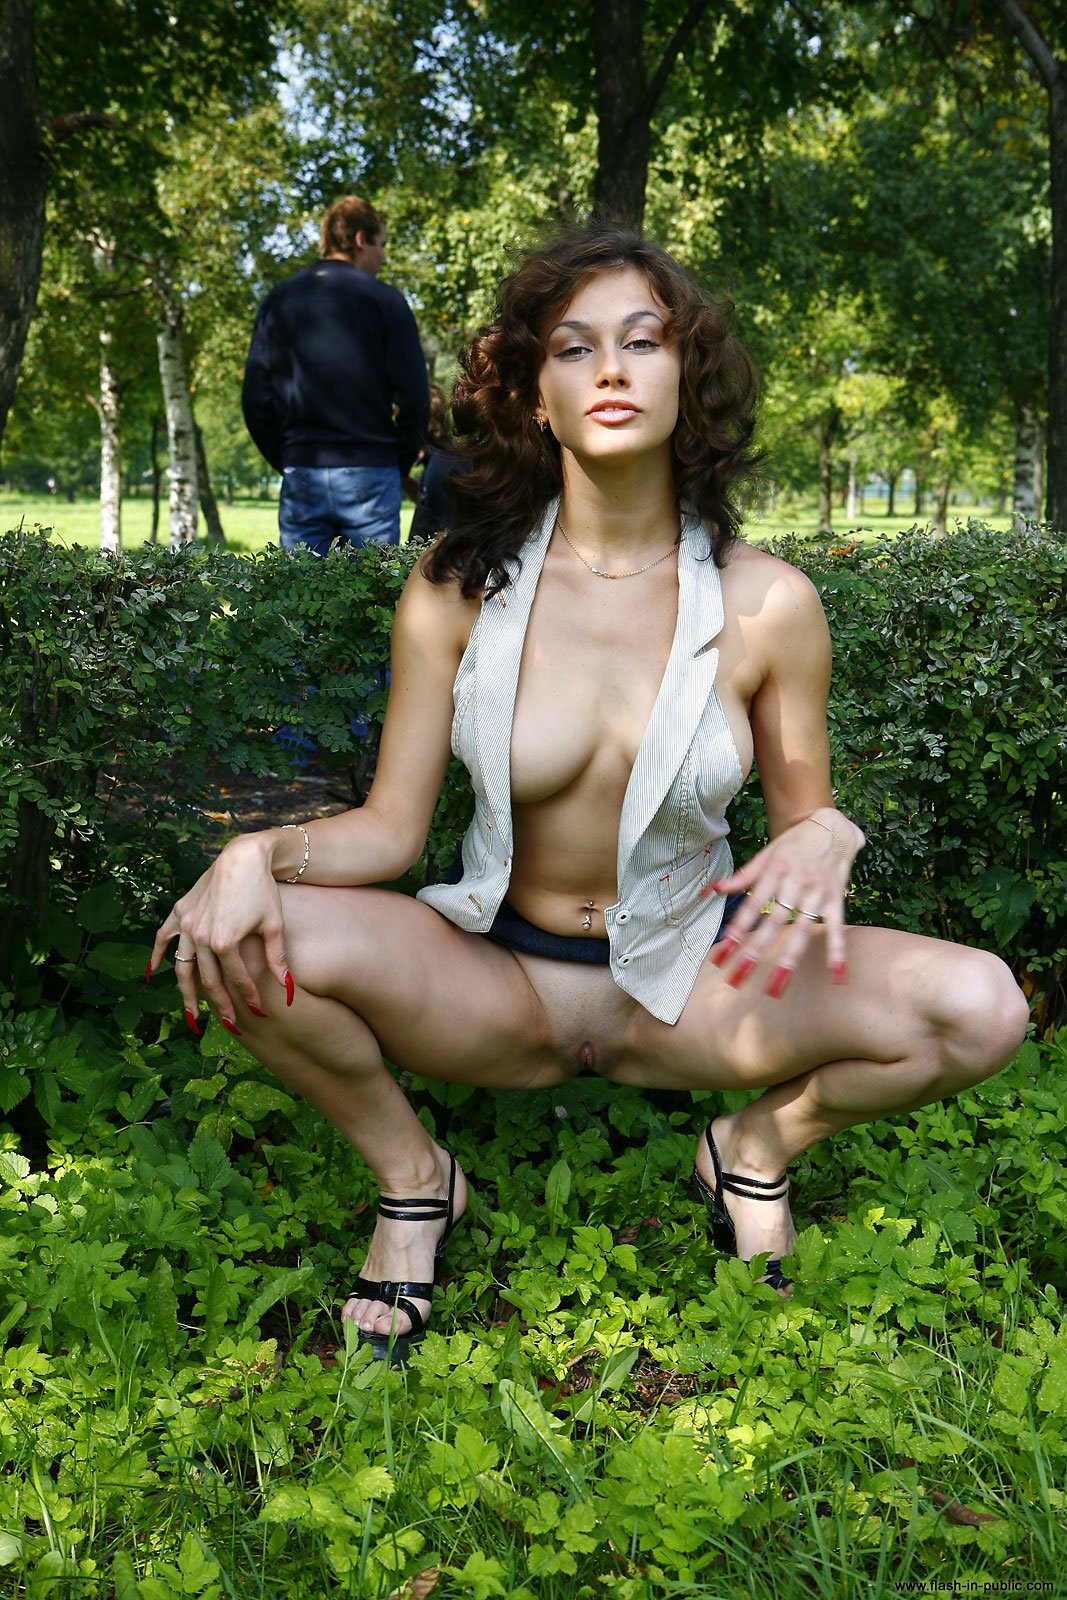 marianna-h-nude-park-flash-in-public-08